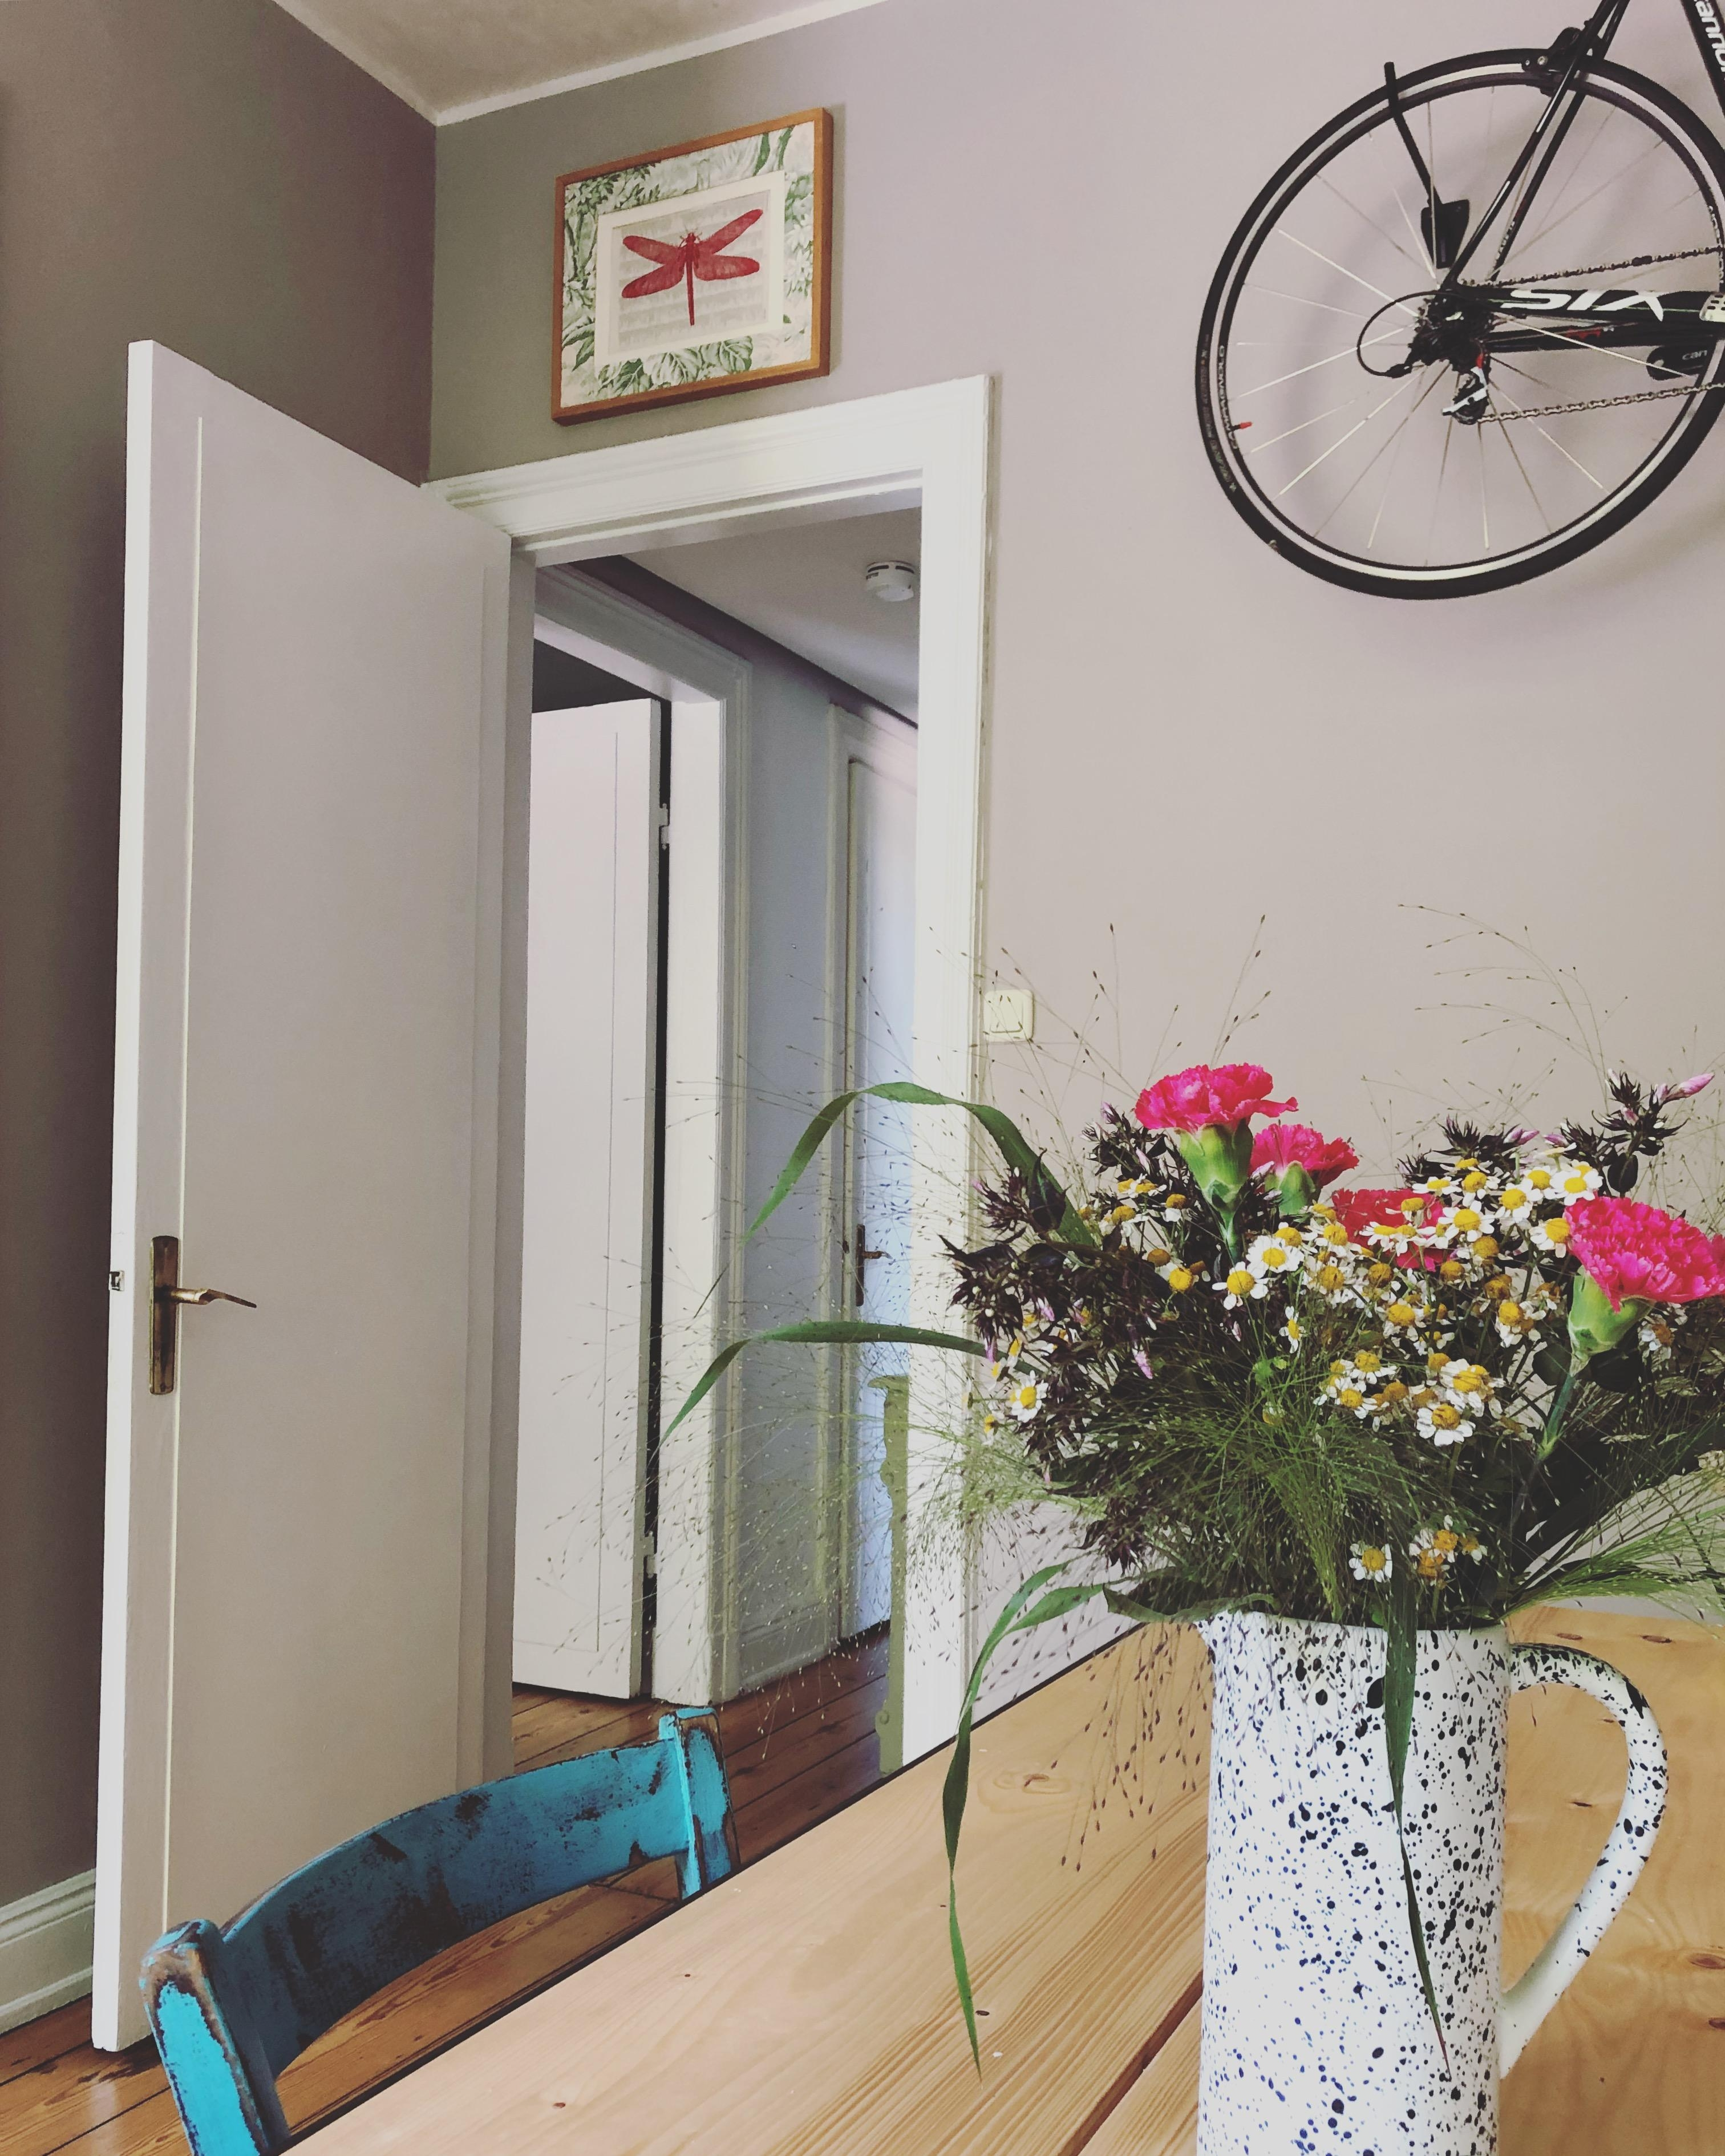 #esszimmer #flowerfriday #esstisch #altbauliebe #cozy #colorfulliving #interior #couchliebt #home #bike #couchstyle